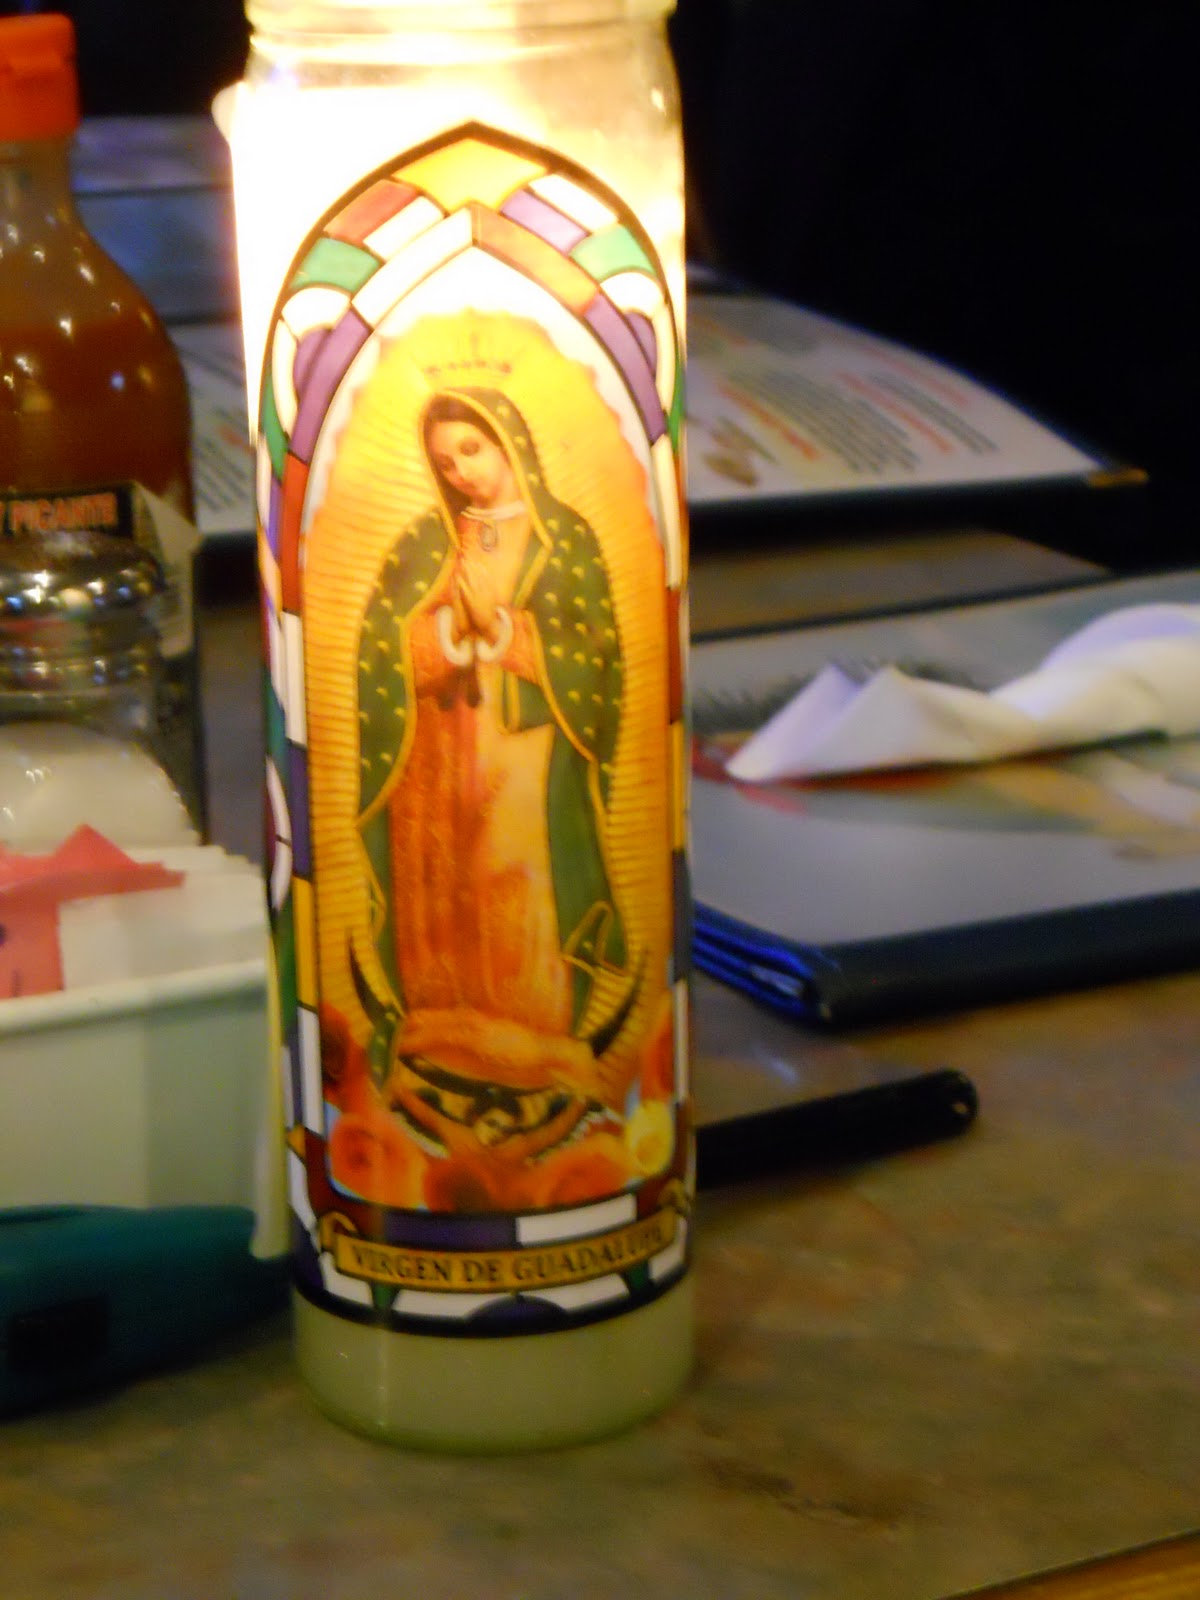 Celebrating Our Lady of Guadalupe | Wilmington Faith and Values